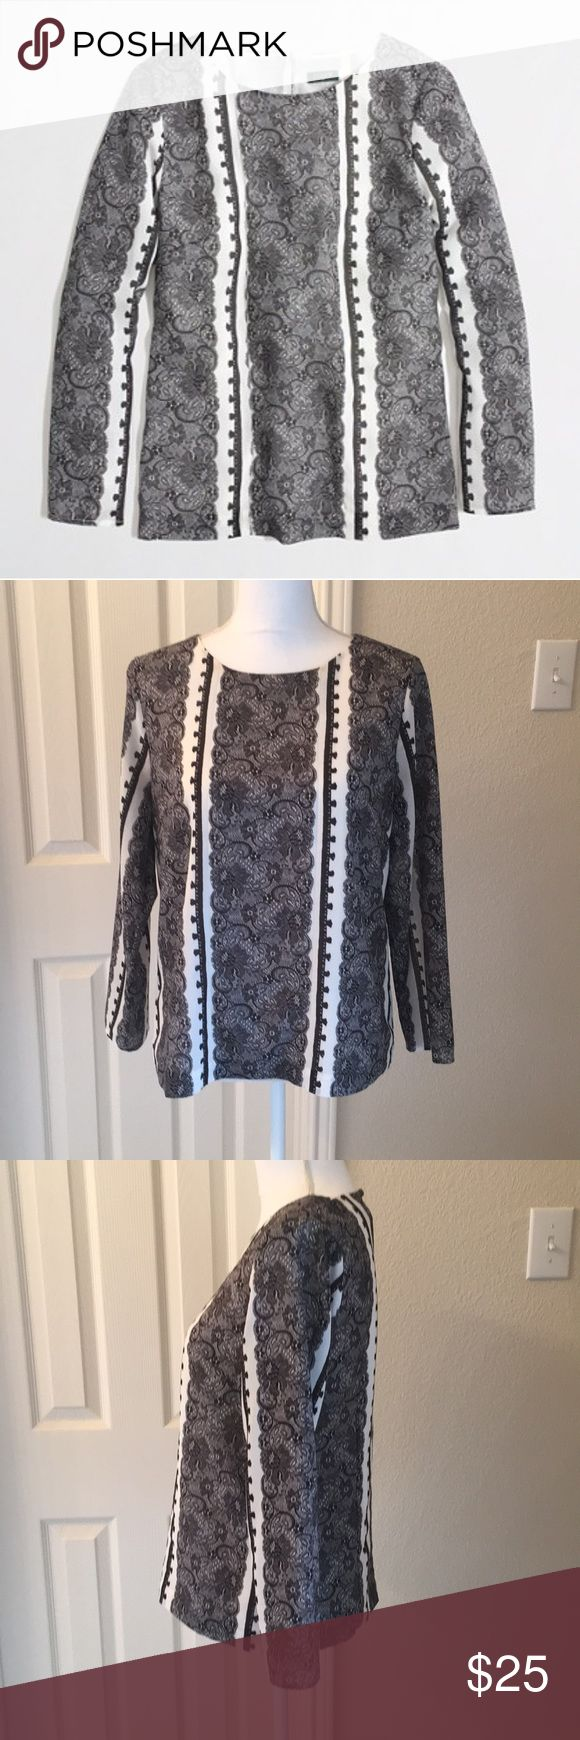 J. Crew Factory Optical Lace Top Beautiful J. Crew Factory Optical Lace Top.  Smooth silky fabric with lace-like design.  Cream with black pattern.  Long sleeves.  Fully lined.  Button closure at back of neck.  See pictures for measurements J. Crew Factory Tops Blouses